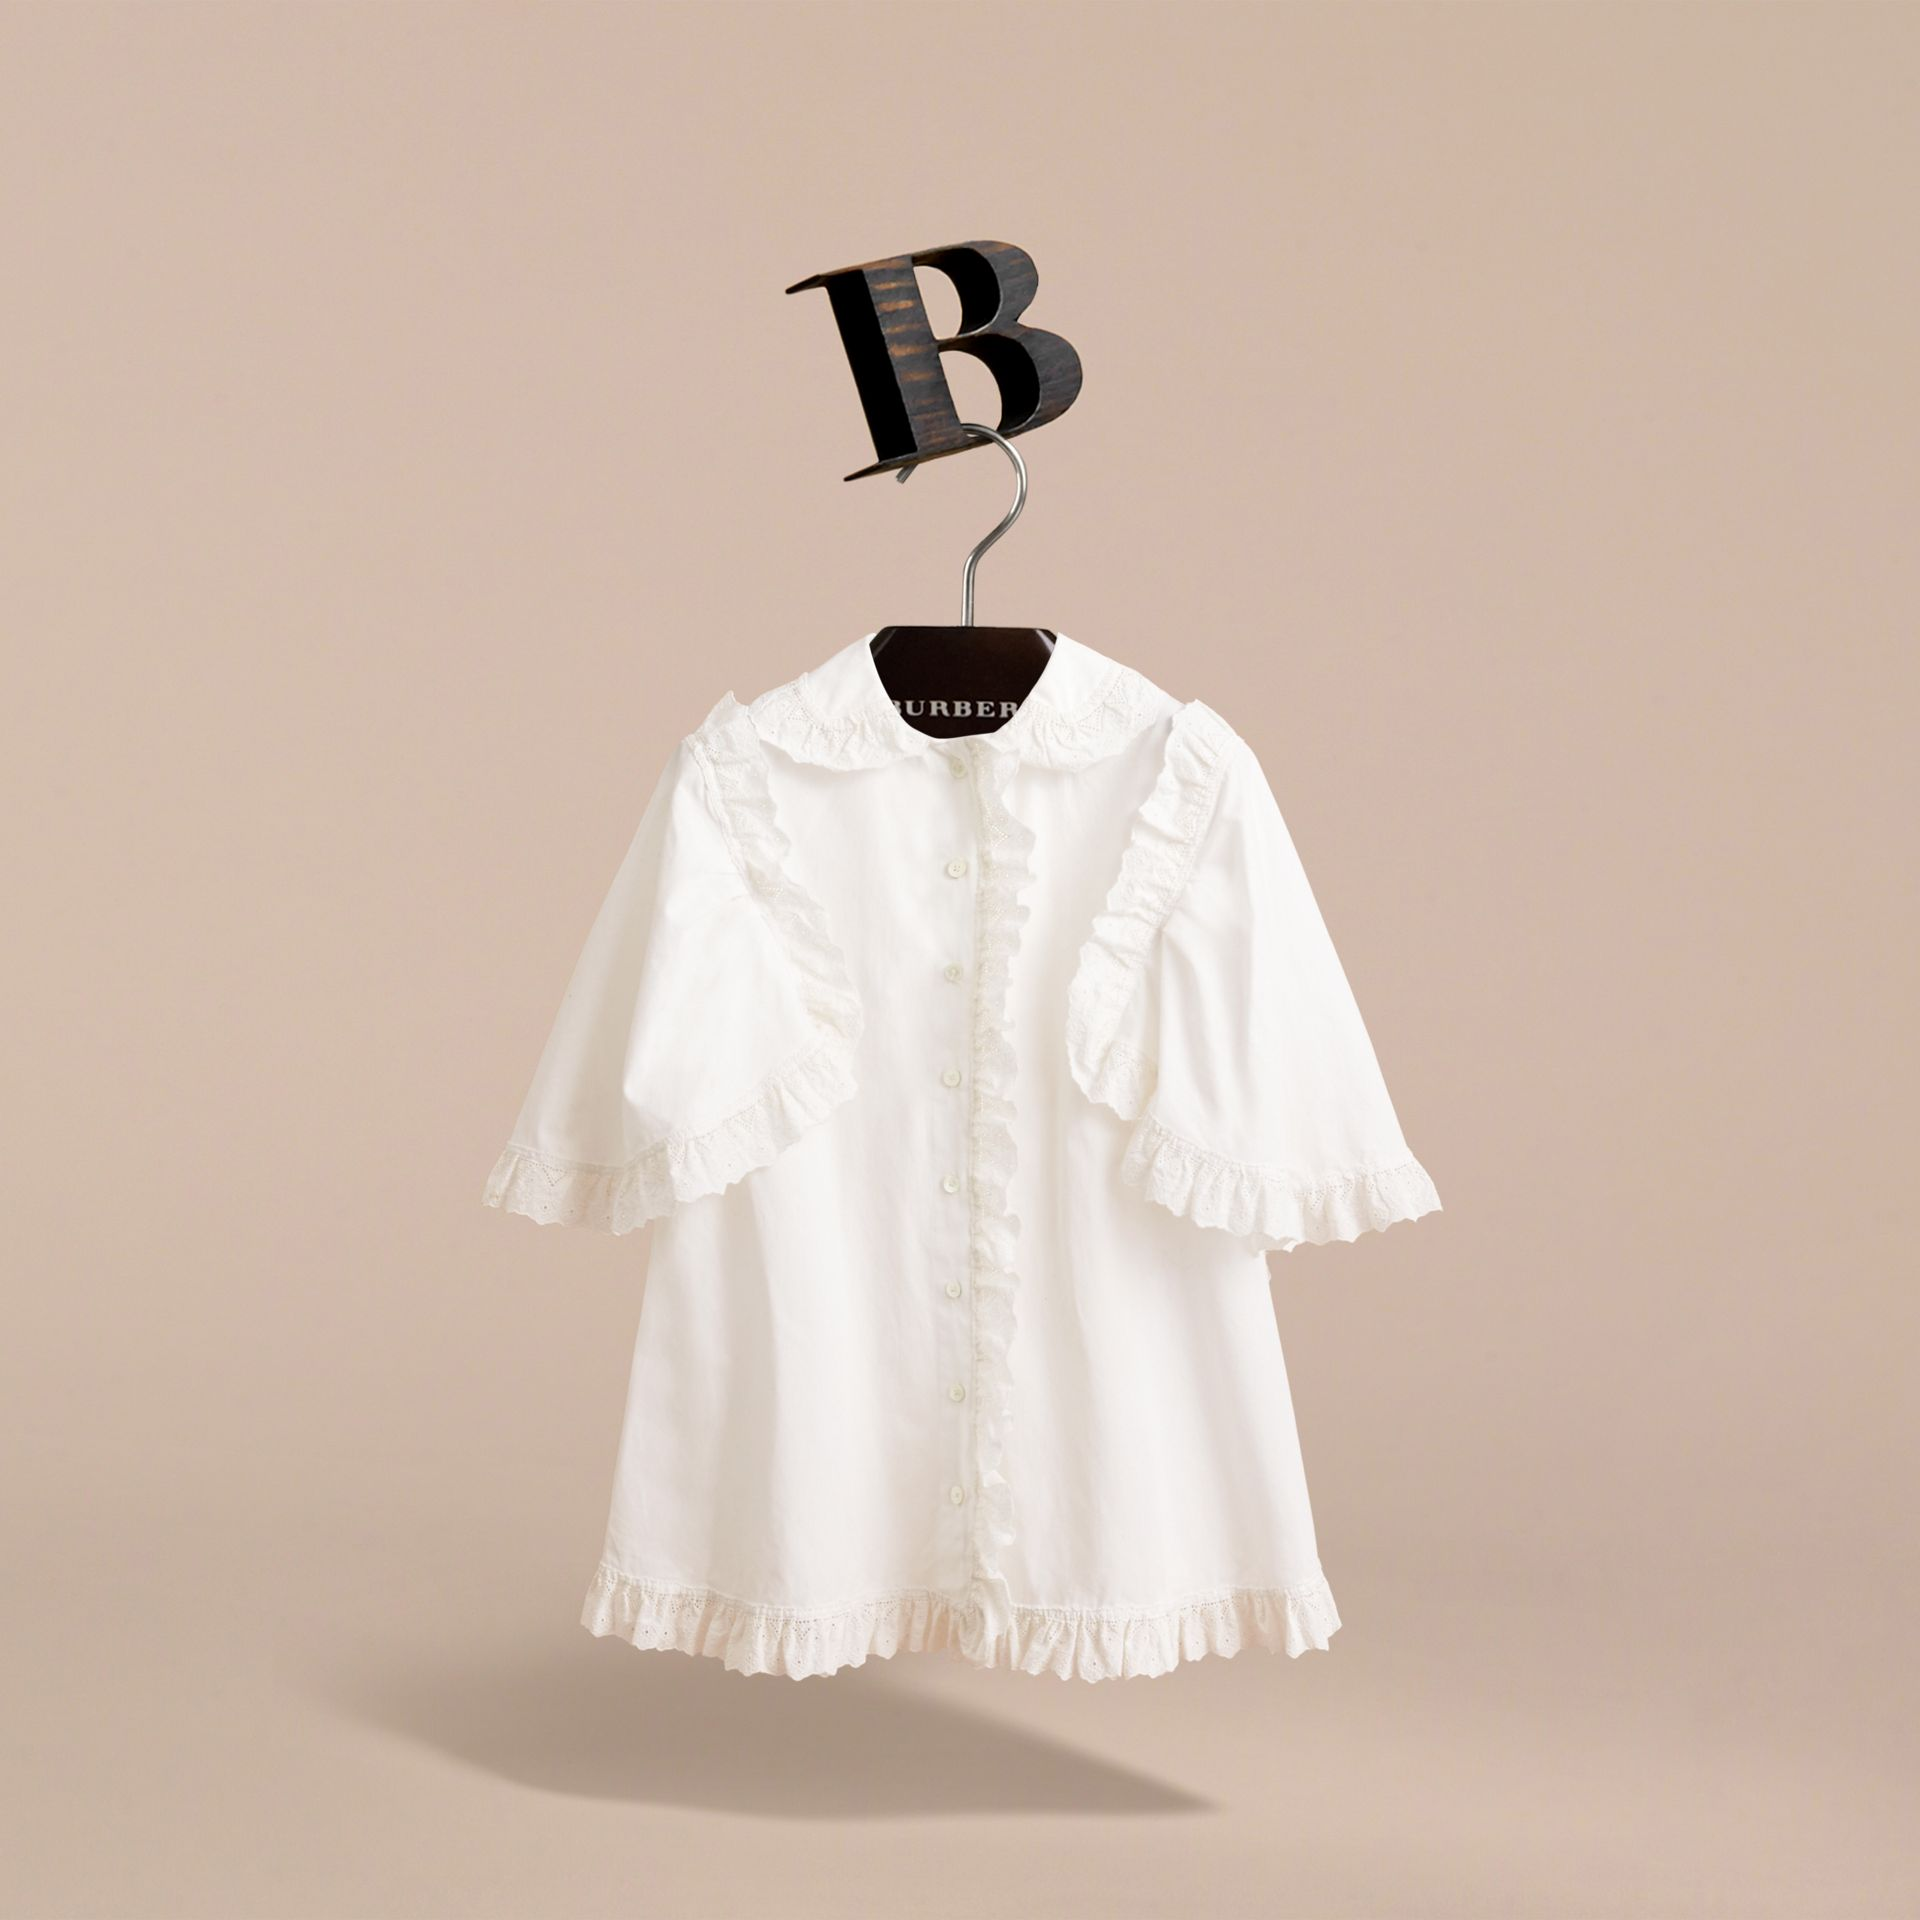 Broderie Anglaise Ruffle Cotton Poplin Shirt in White | Burberry - gallery image 2